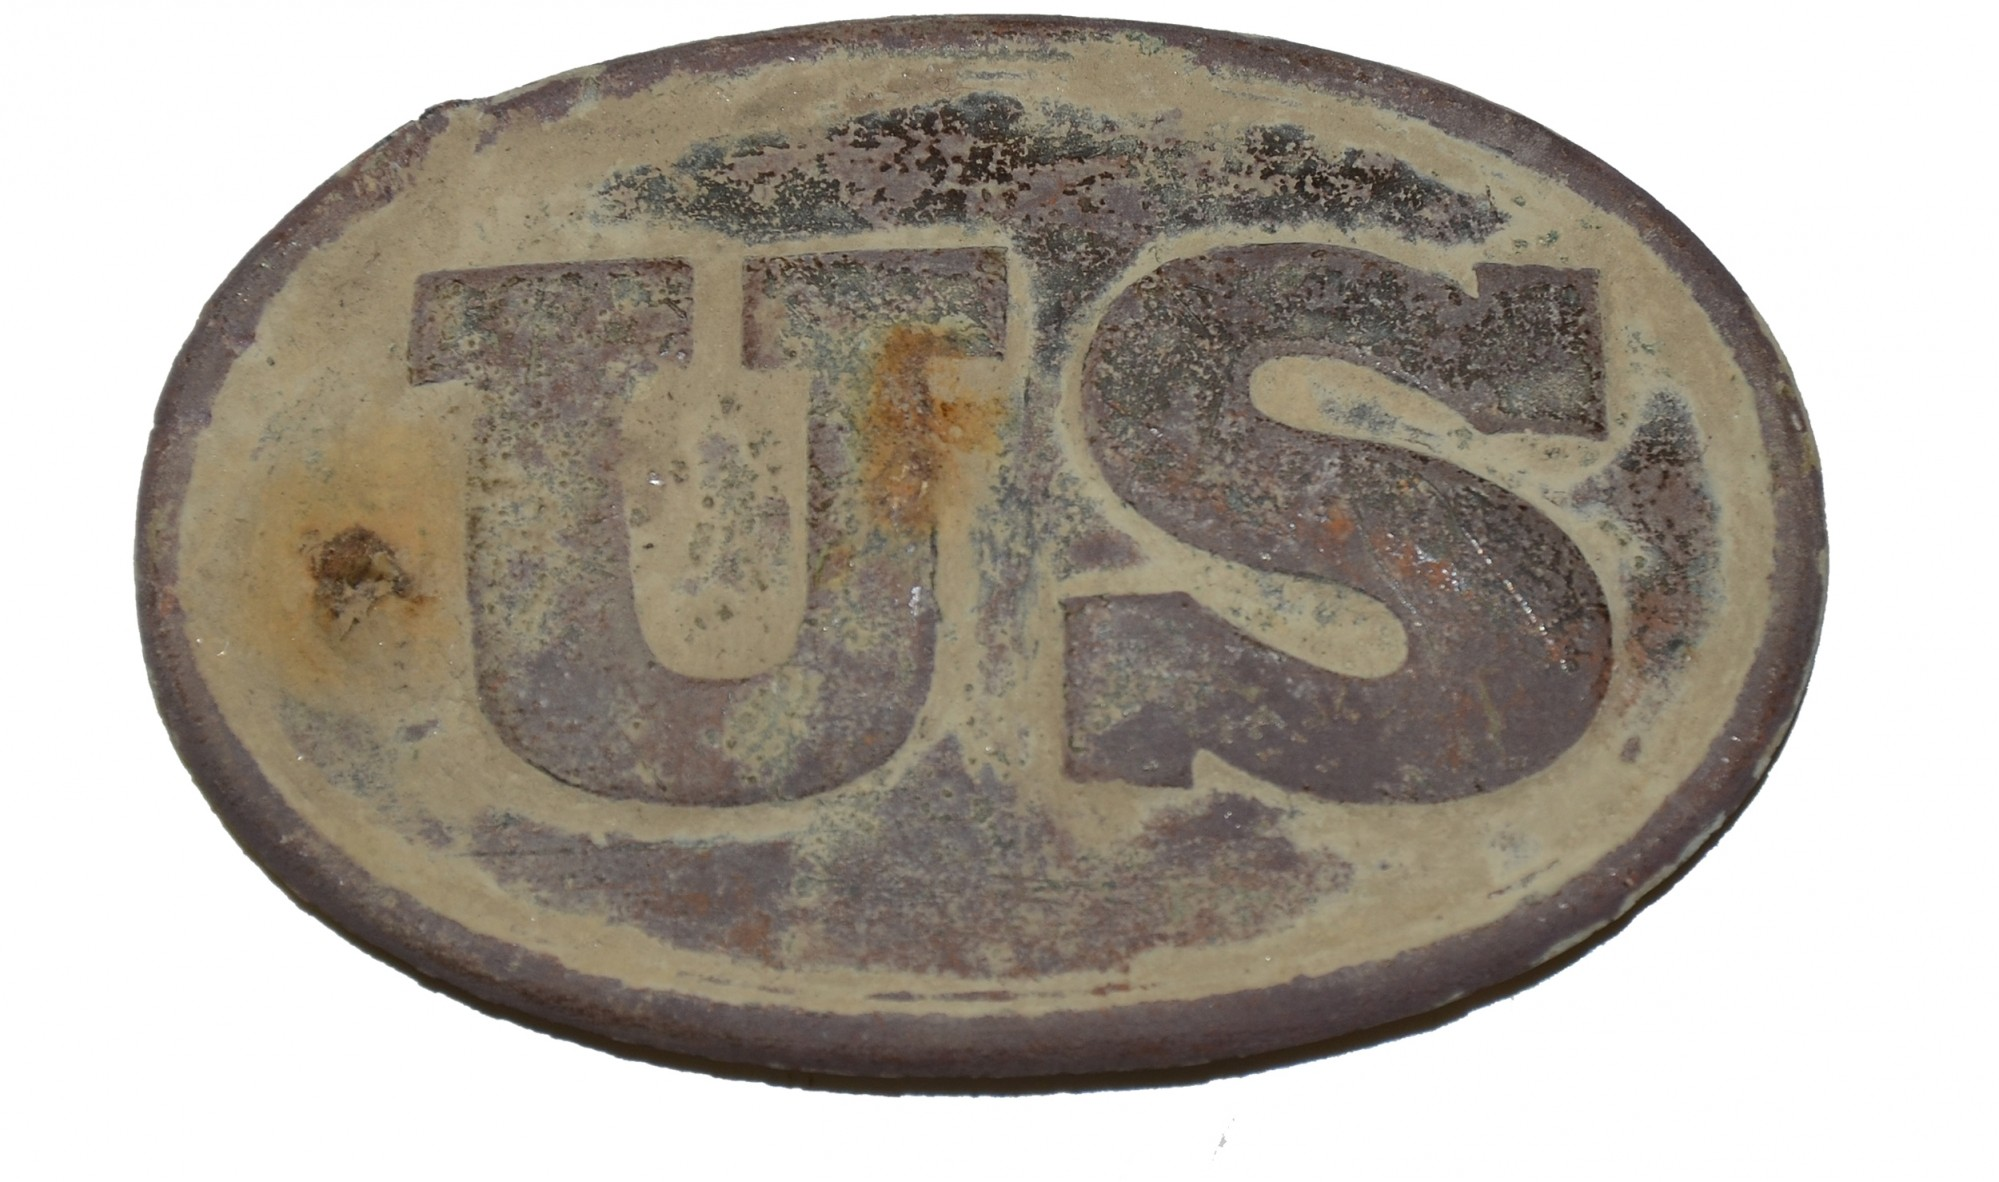 PATTERN 1839 CARTRIDGE BOX PLATE RECOVERED AT GETTYSBURG